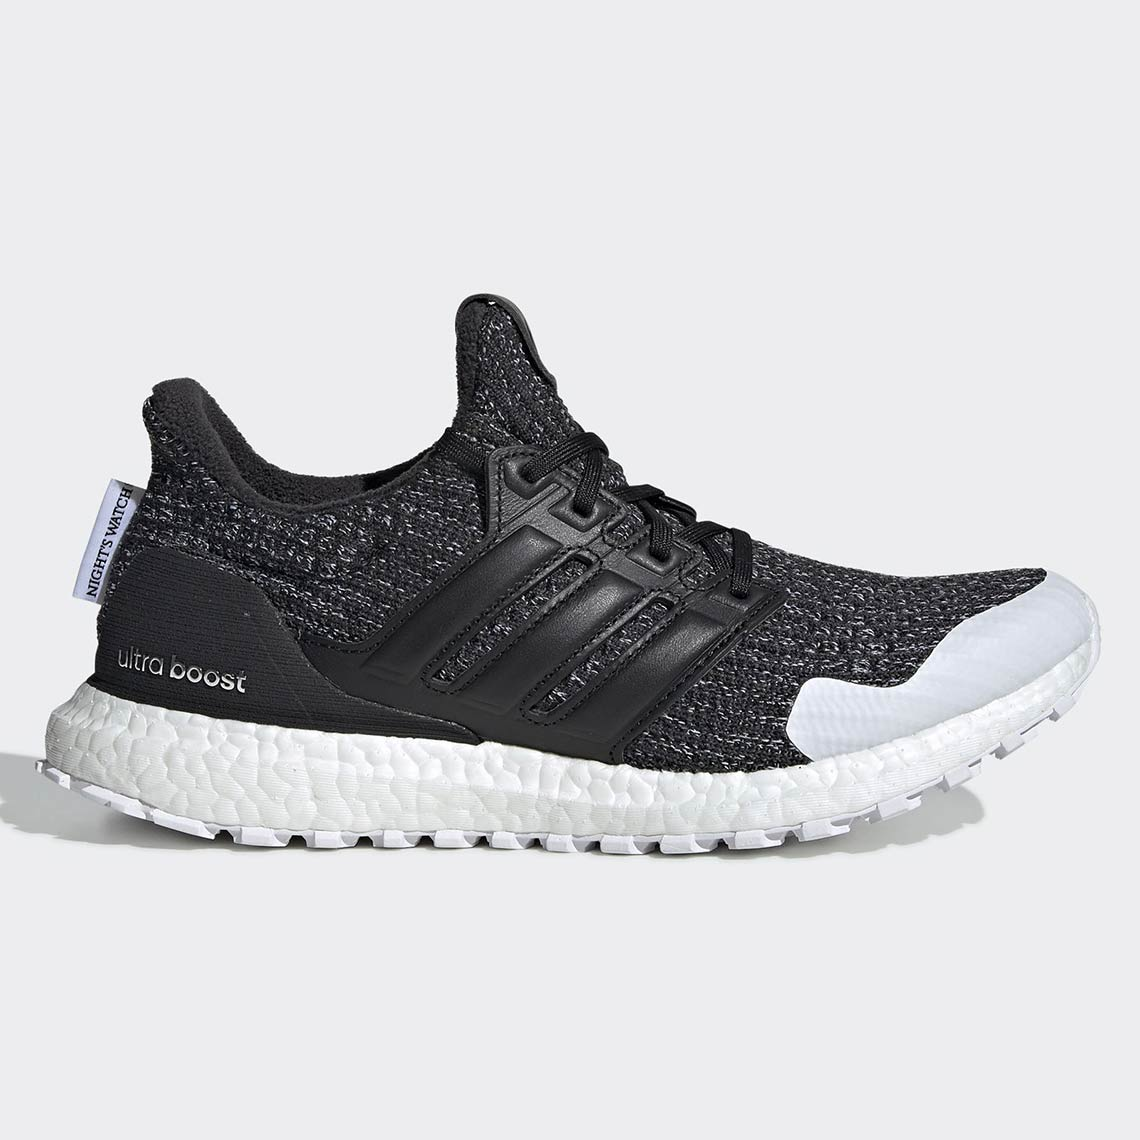 GAME OF THRONES X ADIDAS ULTRA BOOST LTD 'NIGHT'S WATCH' EE3707